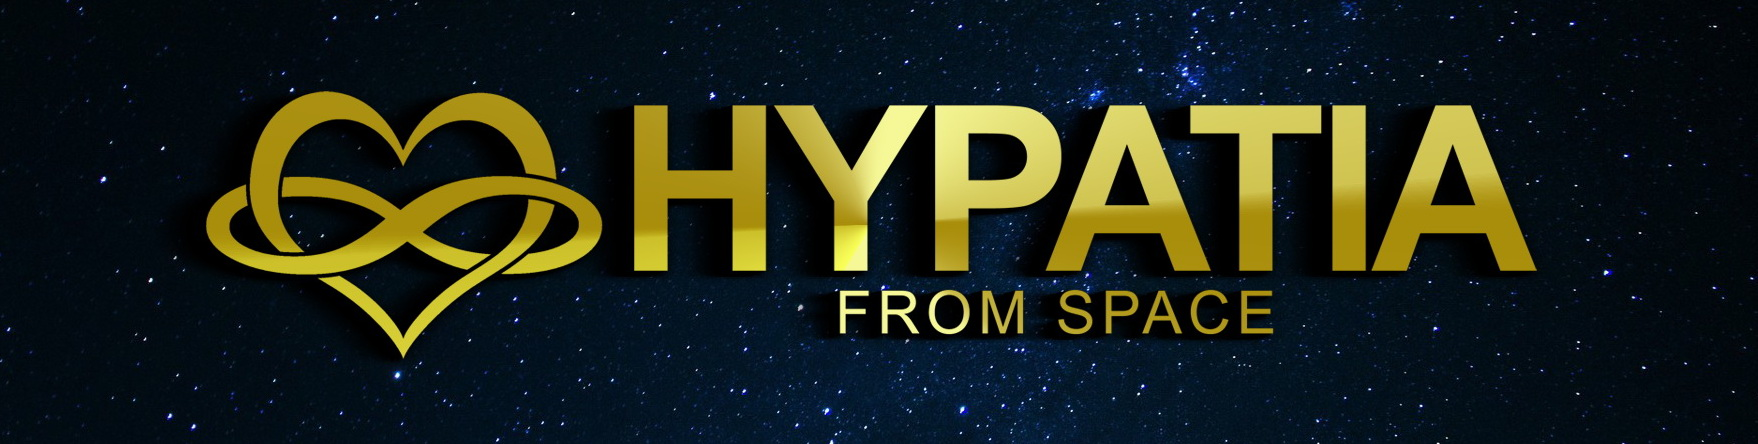 Hypatia from Space